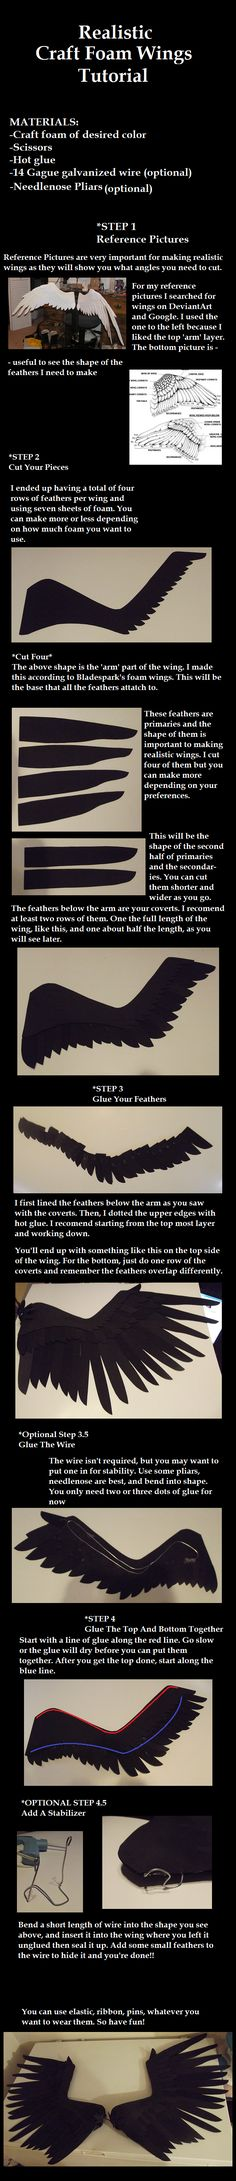 Realistic Foam Wings Tutorial by ~Zexion-the-gamer on deviantART  This might be really good for any costume ideas!